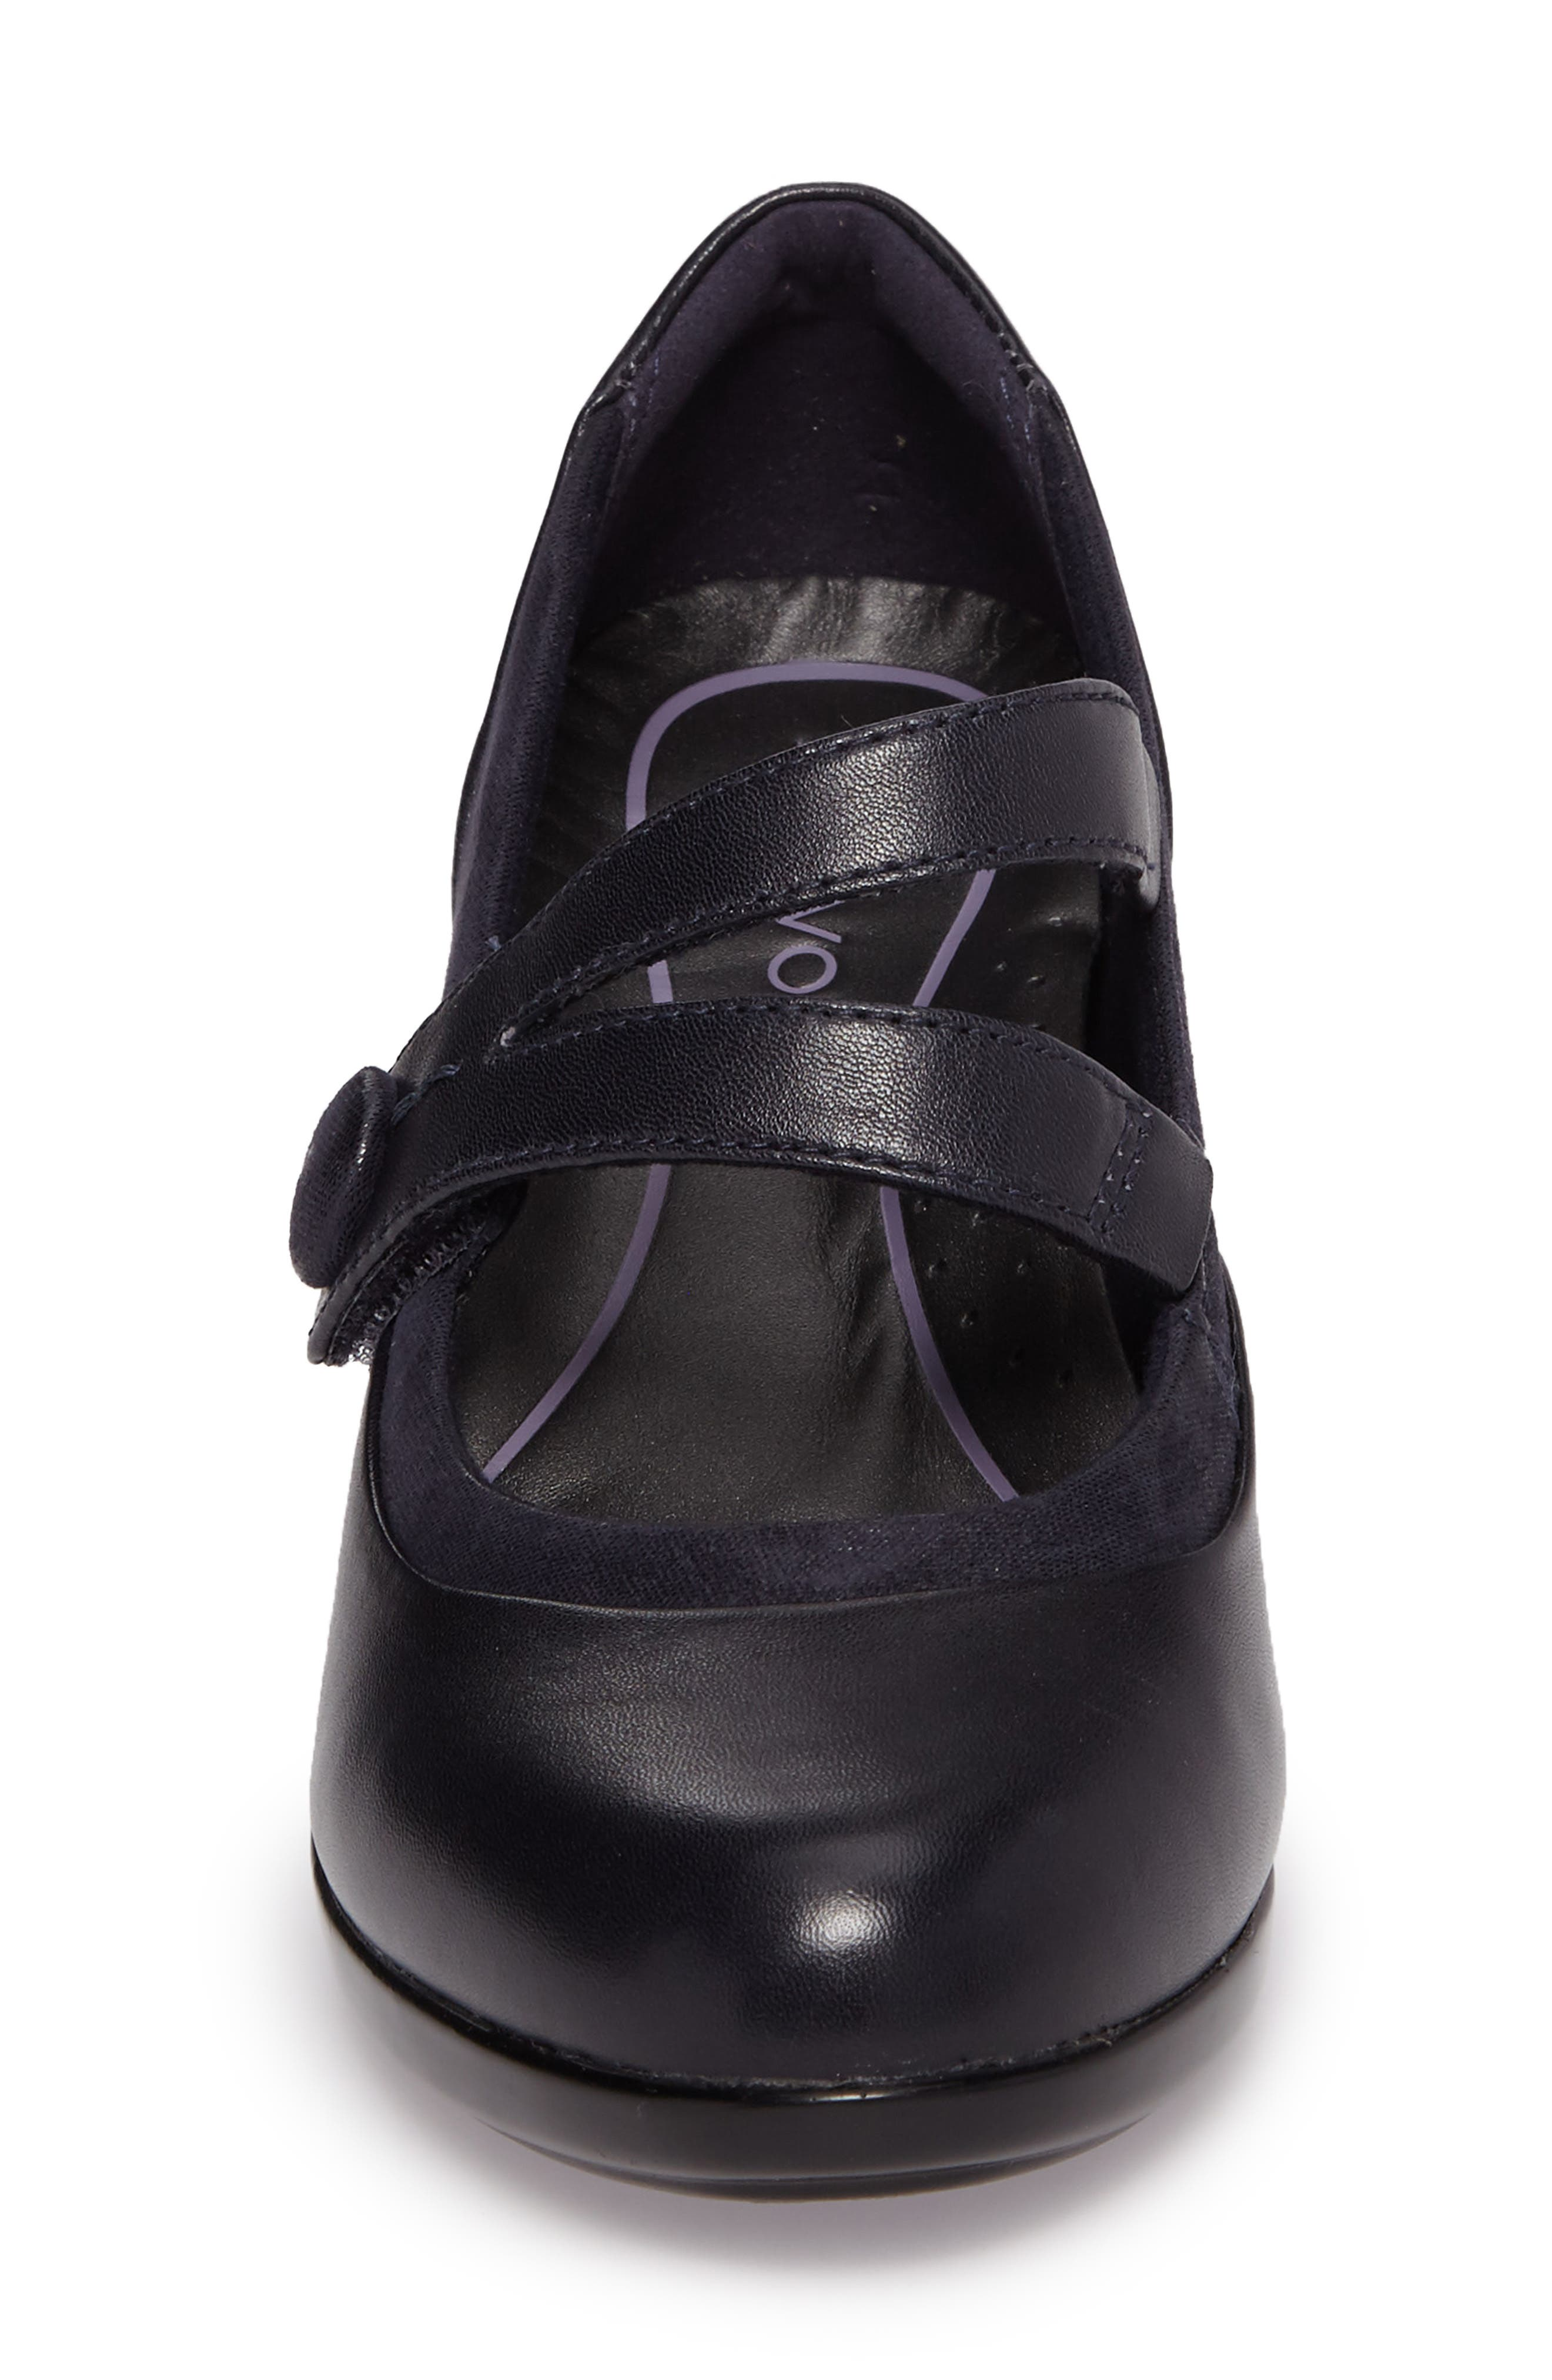 Lexee Mary Jane Pump,                             Alternate thumbnail 4, color,                             Navy Leather